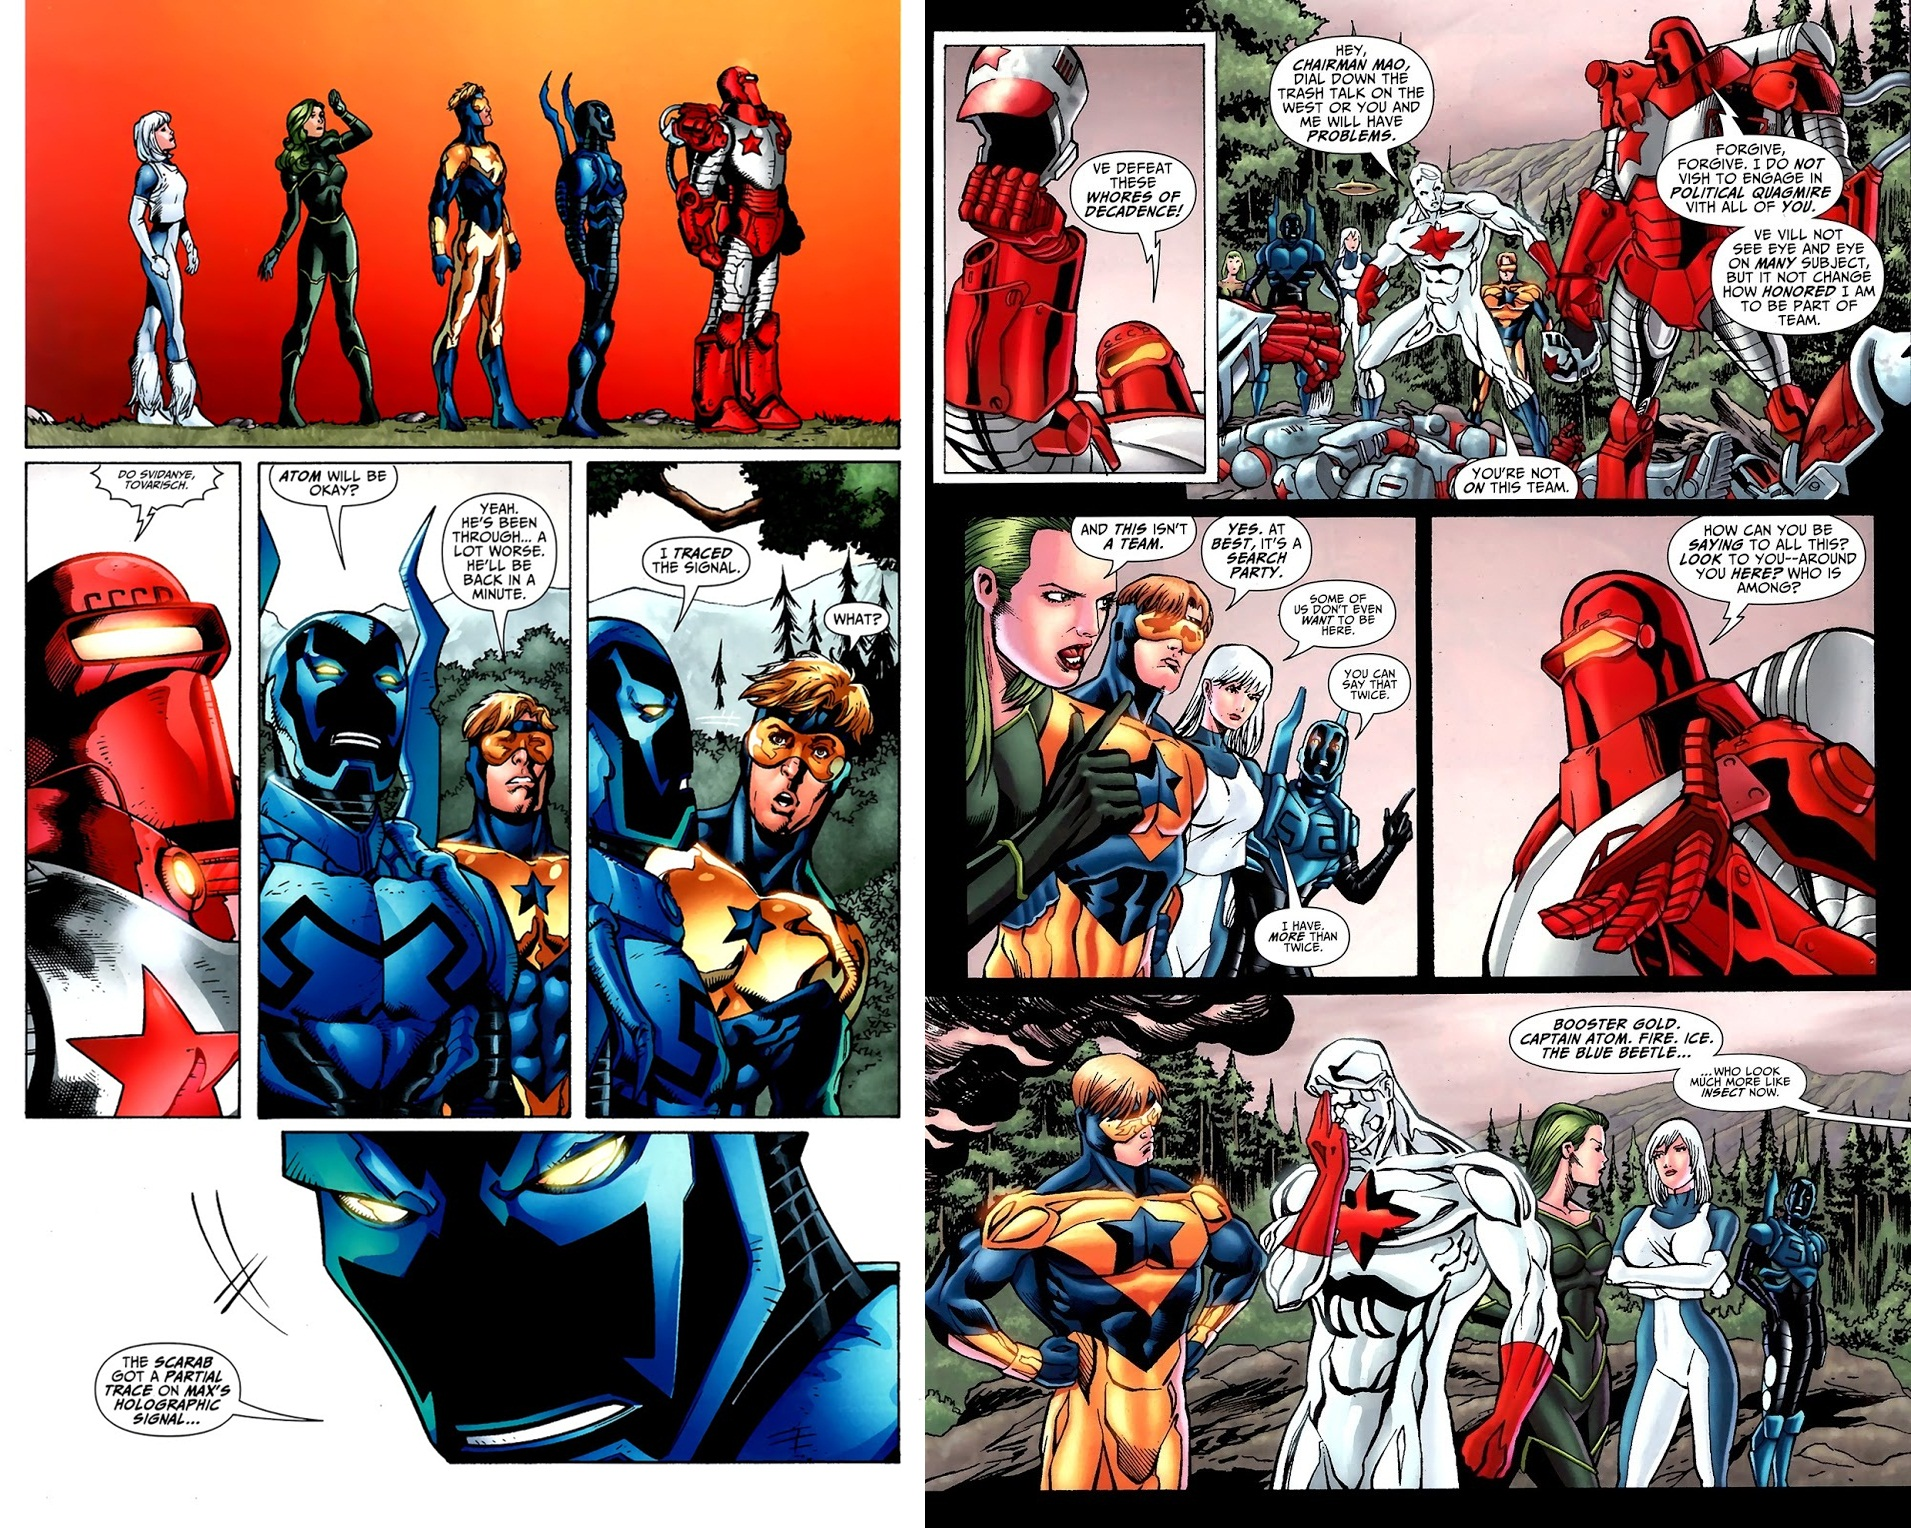 Justice League Generation Lost V1 review